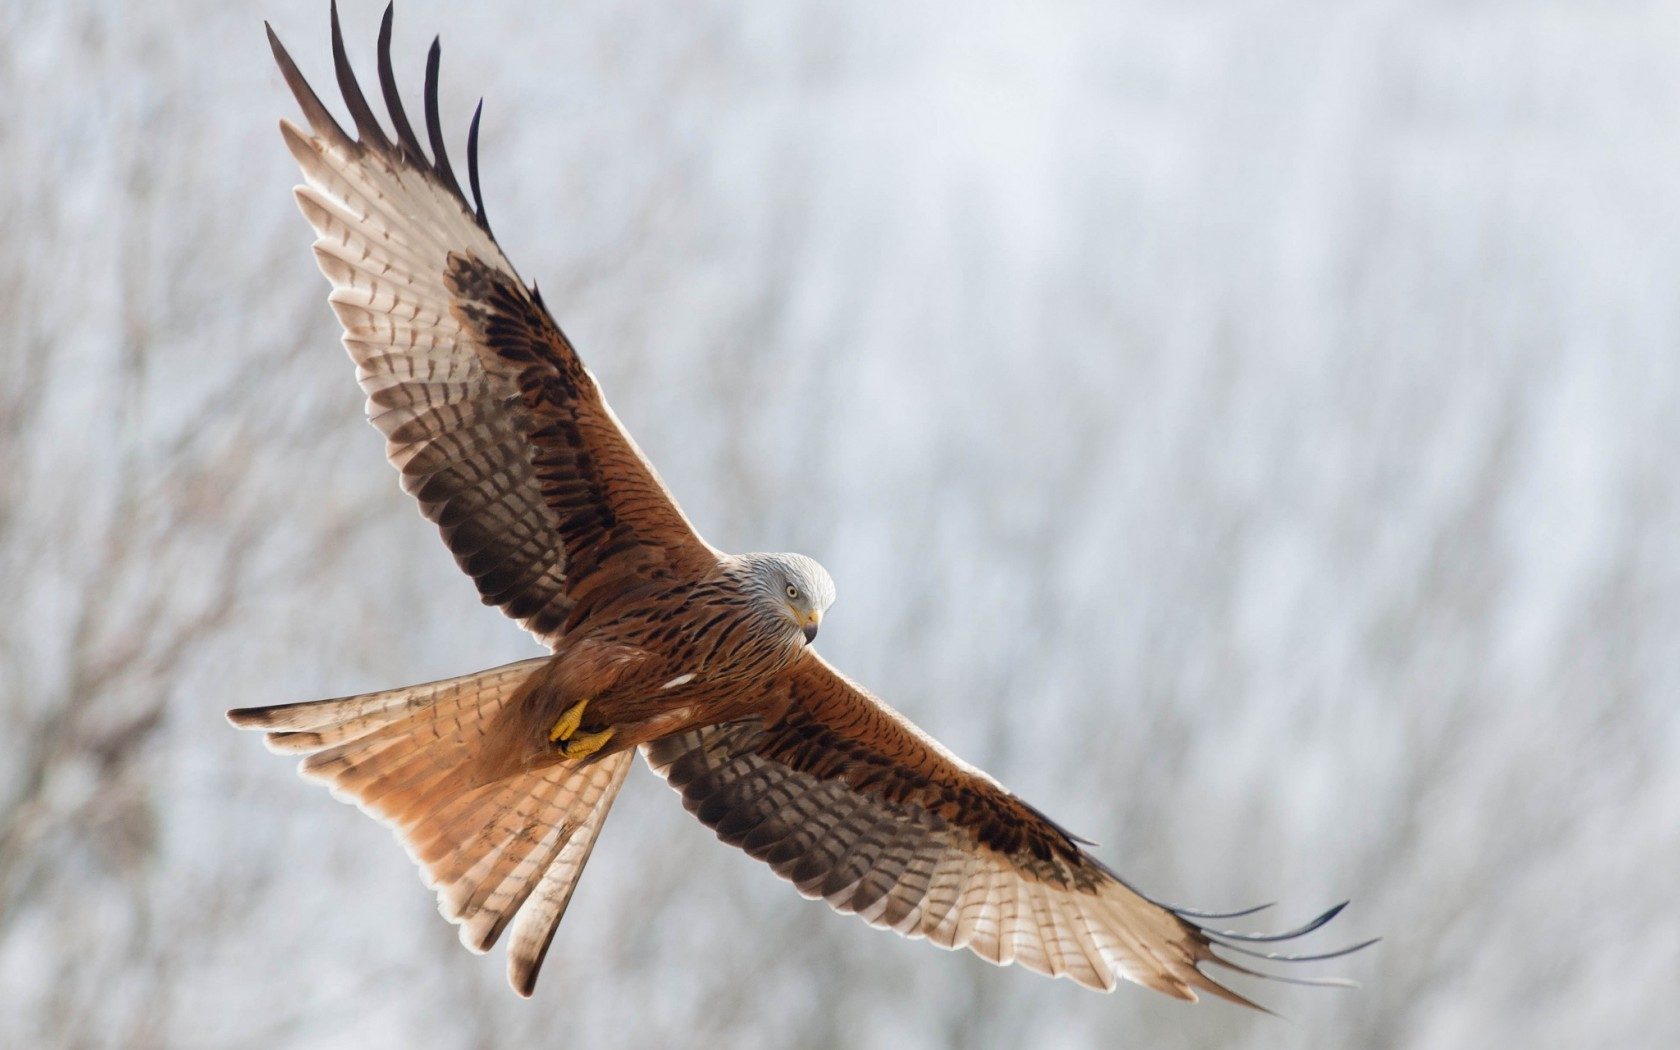 44190 download wallpaper Animals, Birds, Eagles screensavers and pictures for free